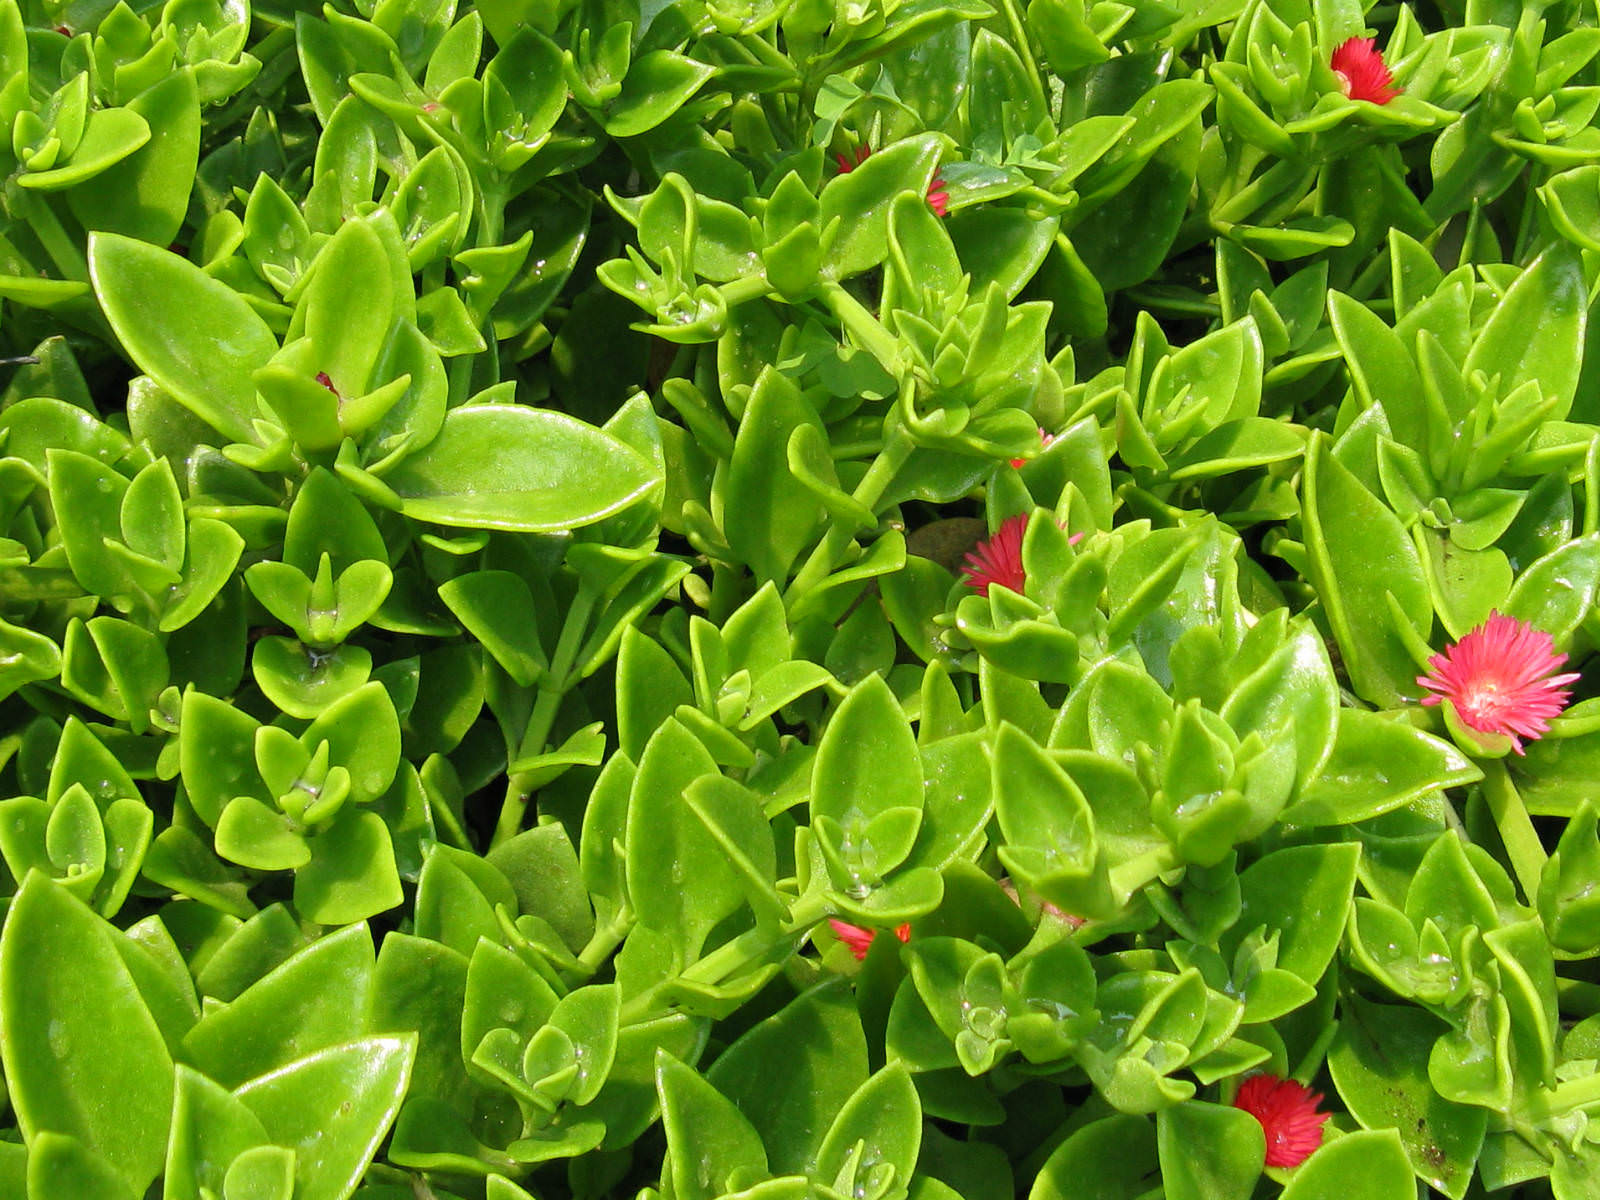 Garden Bush: Baby Sun Rose, Heartleaf Iceplant